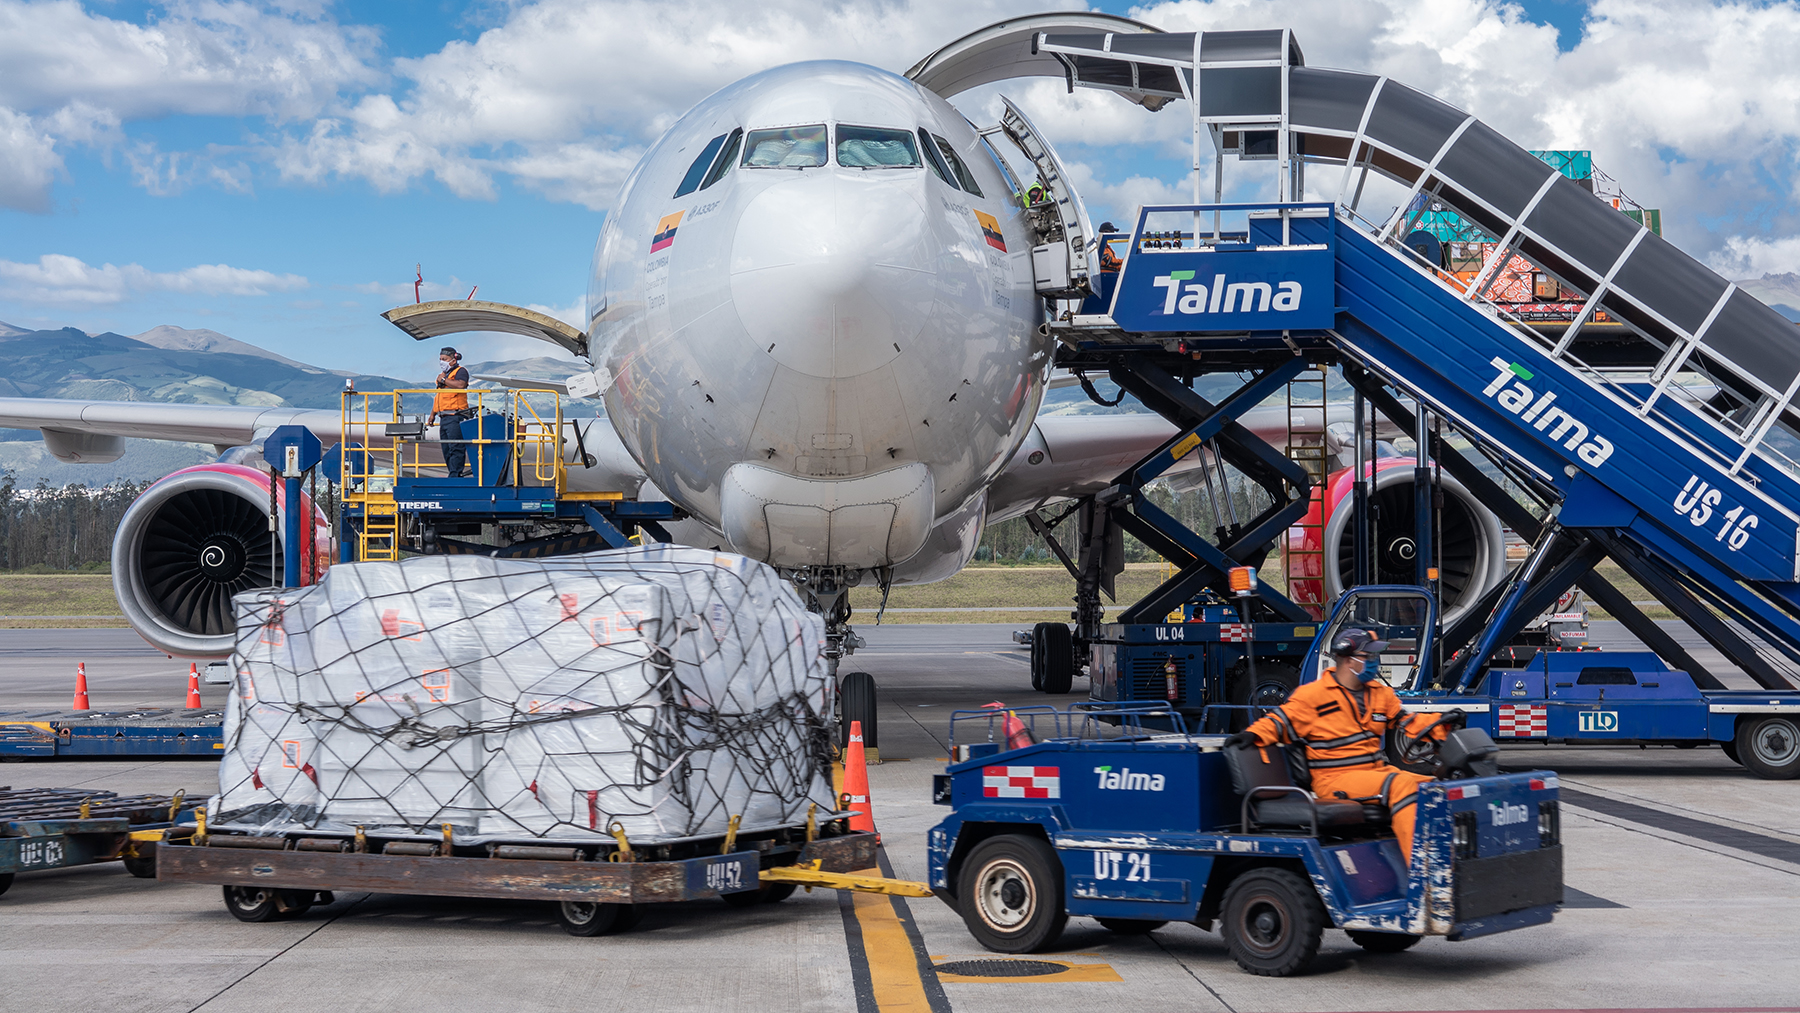 A 8.8-ton Direct Relief shipment arrives in Quito, Ecuador, on June 4, 2020. The shipment contained ICU kits, filled with essential medicines to treat Covid-19 complications, as well as oxygen concentrators, protective gear and other requested medical items for health facilities in the country. (Photo by Isadora Romero for Direct Relief)